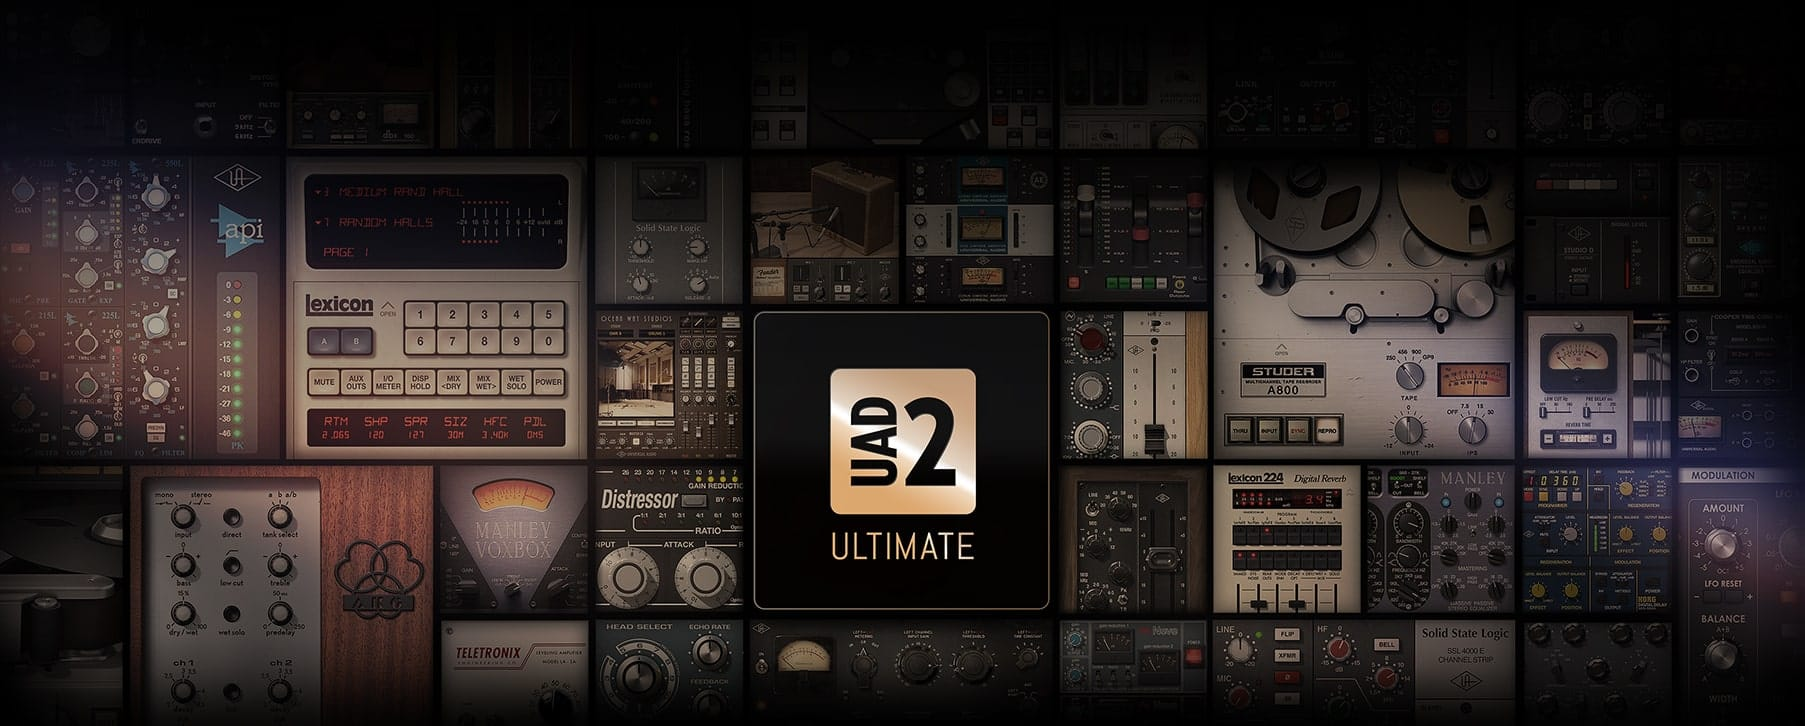 uad 2 crack download full